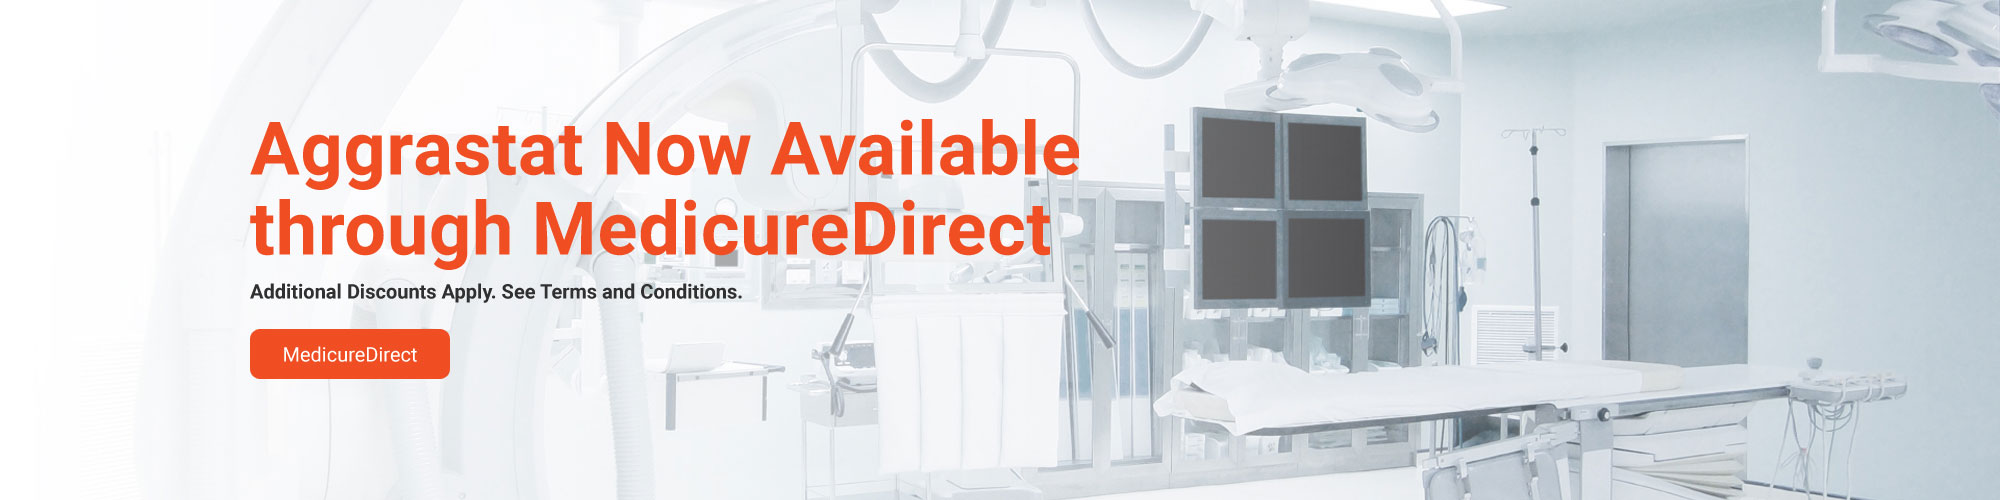 Aggrastat Now Available through MedicureDirect